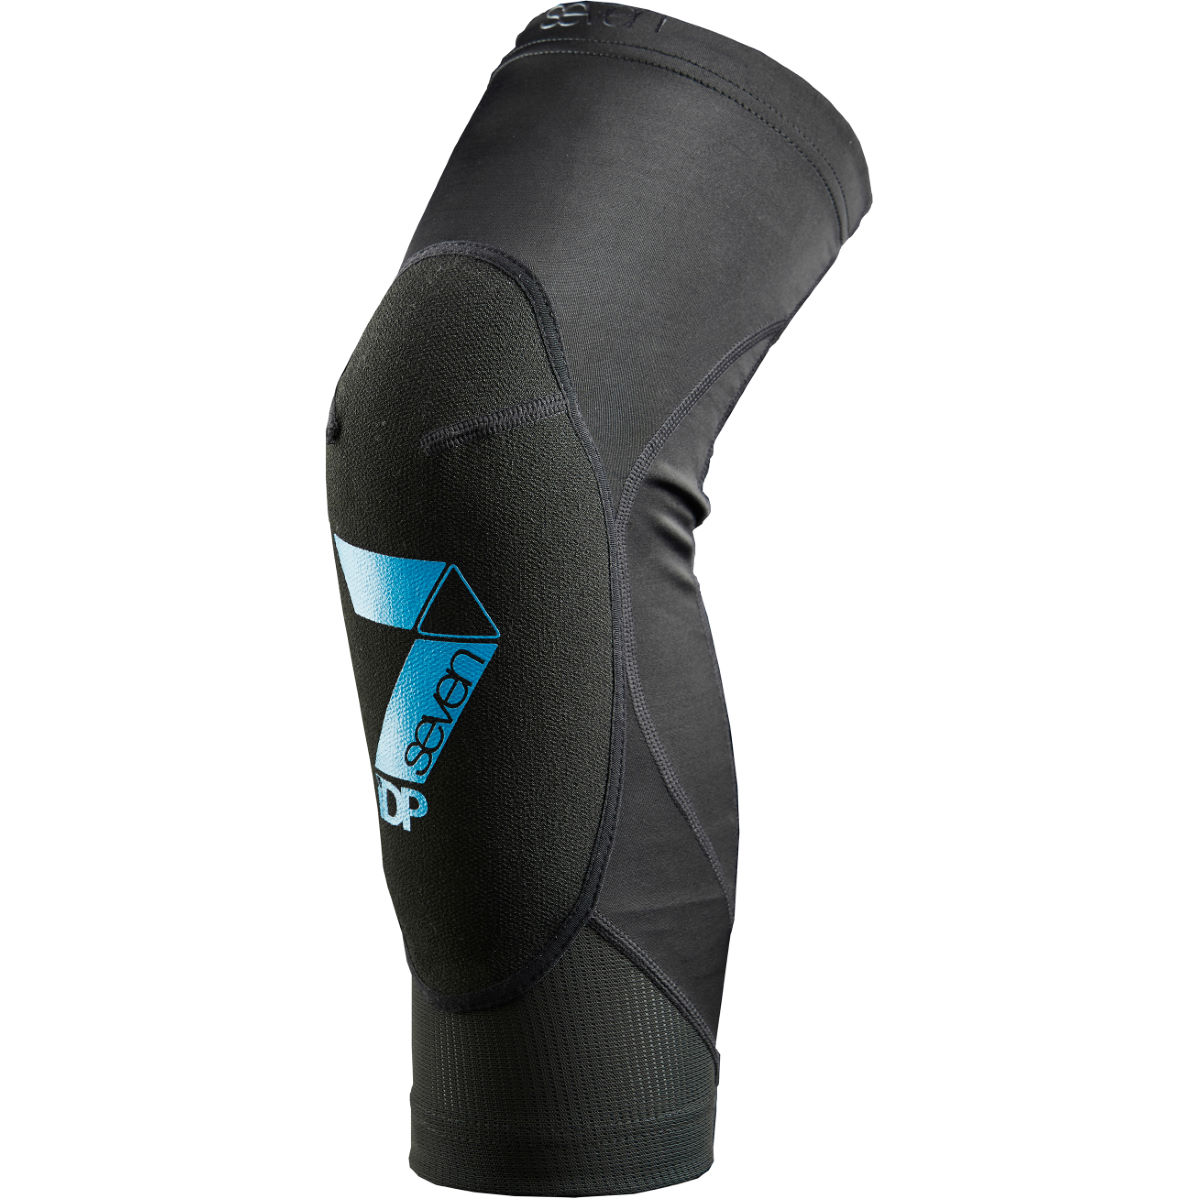 7 iDP Transition Knee Pads - Rodilleras